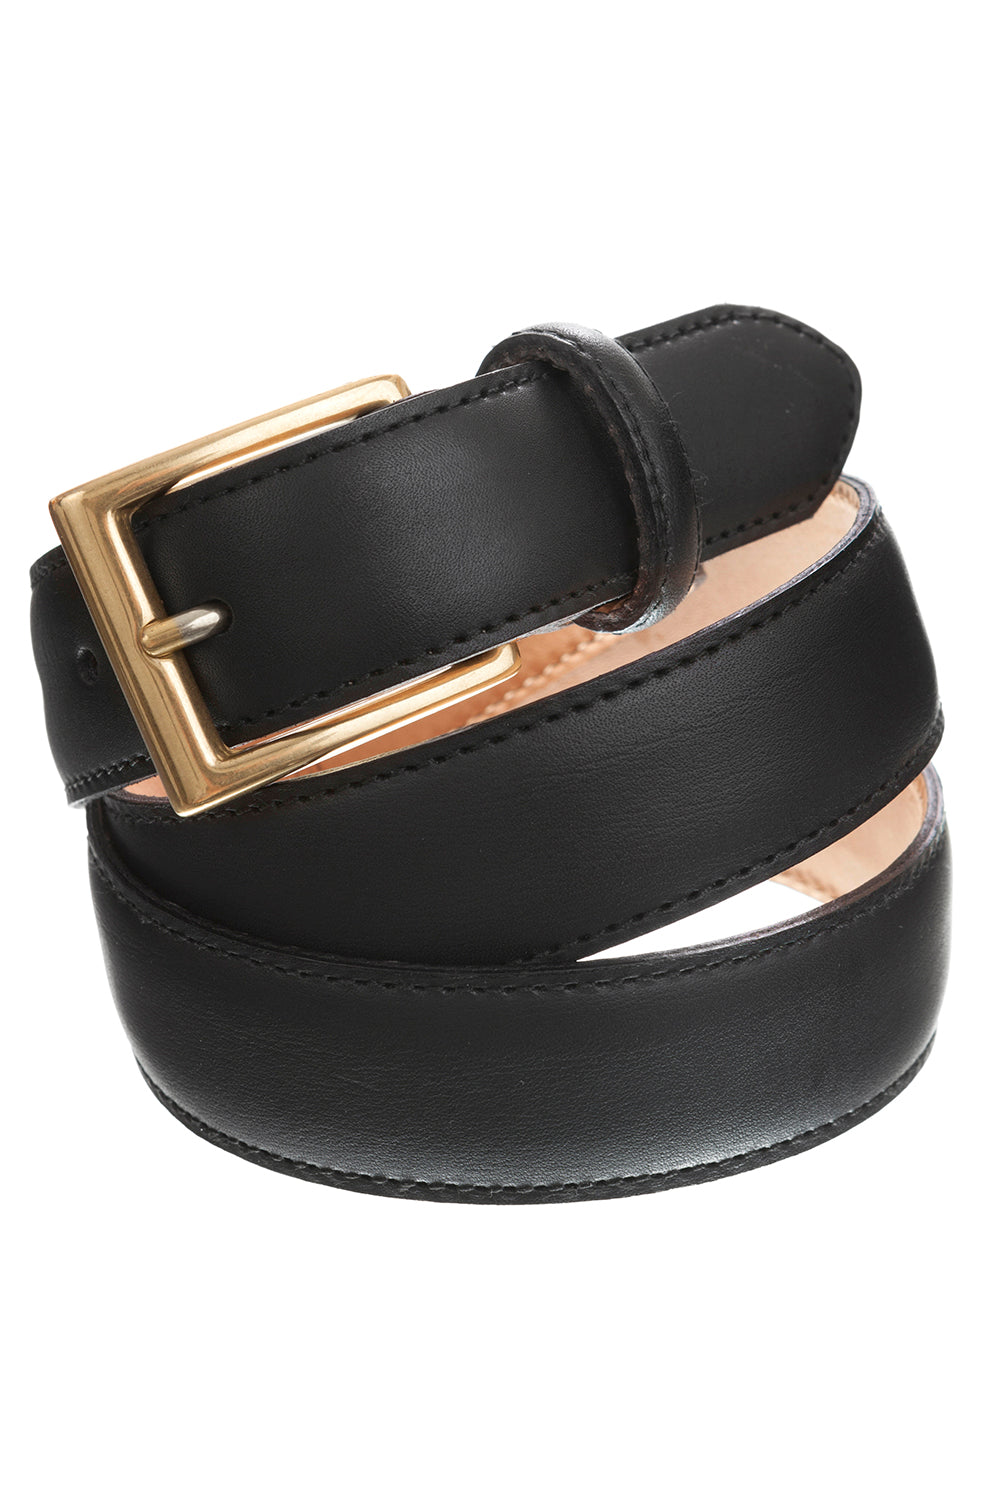 Regent - Black Suit Belt - nickel Buckle - Leather - Regent Tailoring